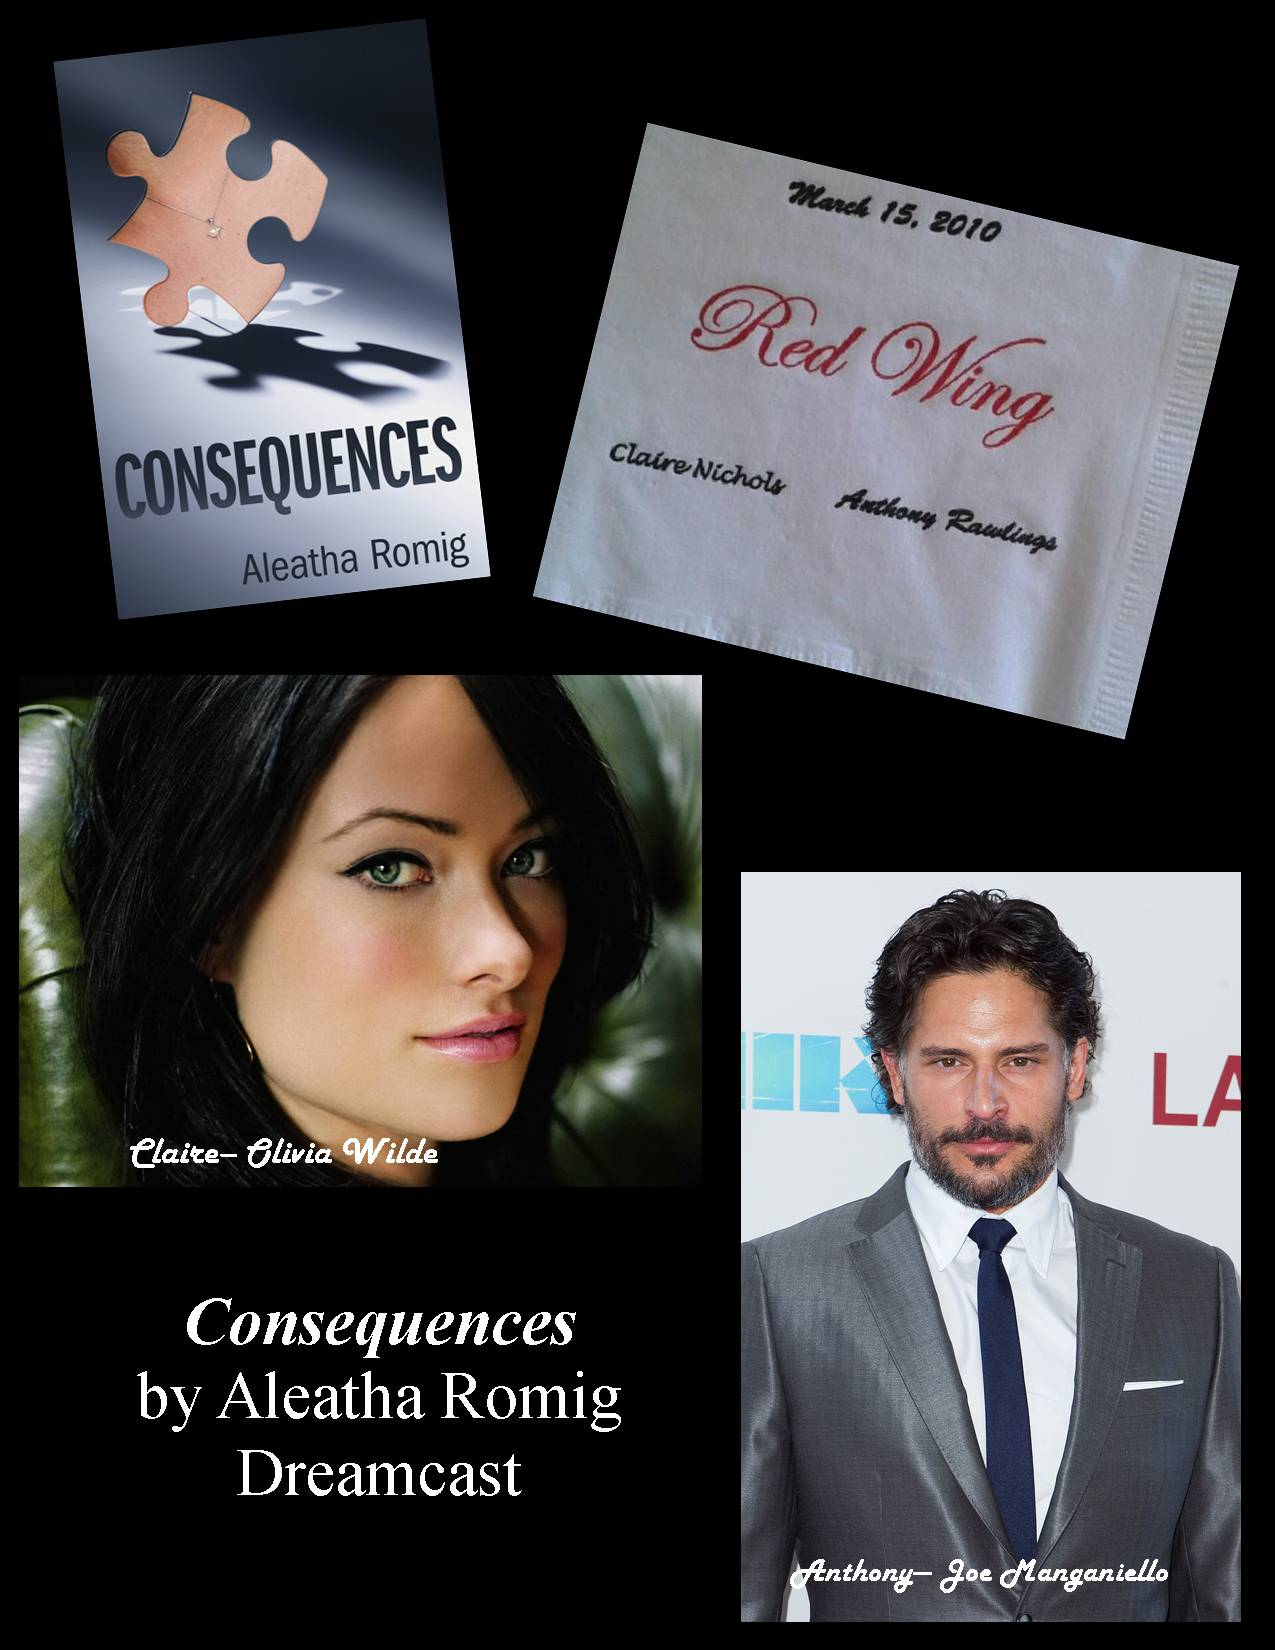 Consequences dreamcast